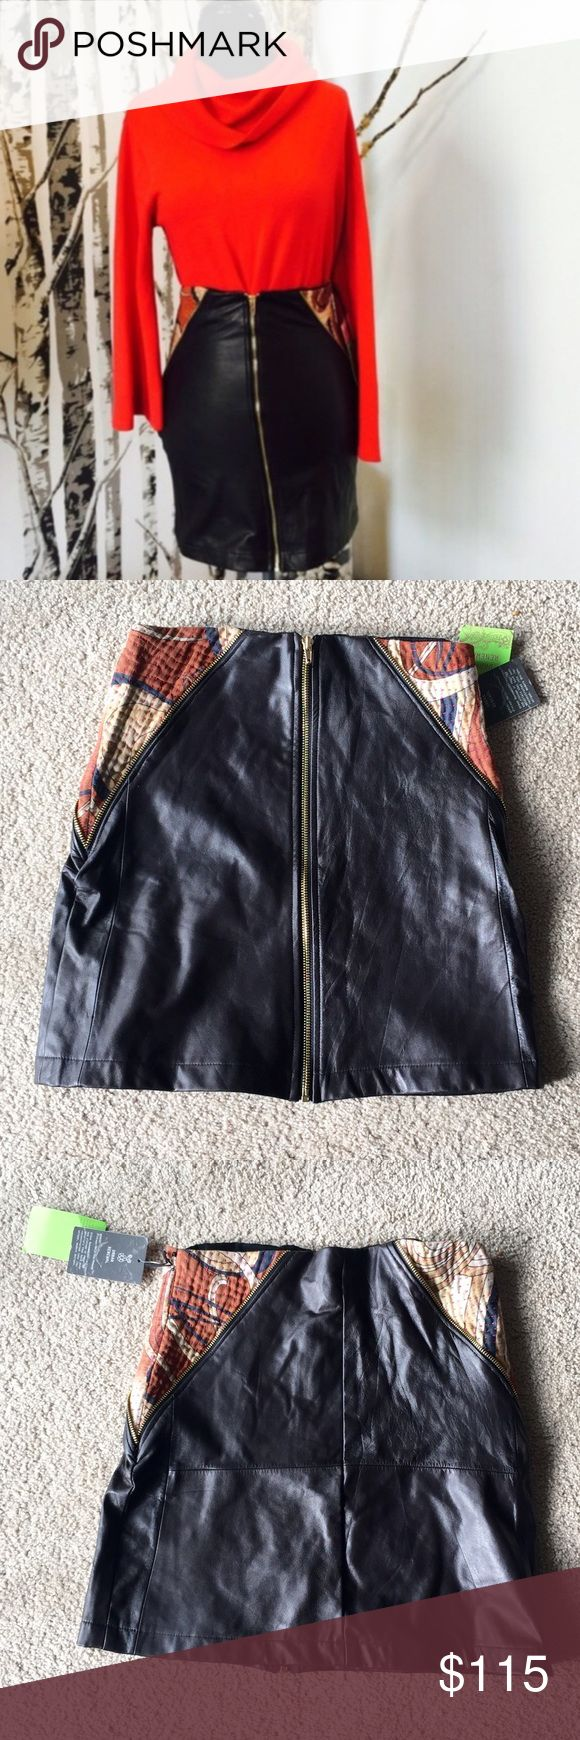 ❗️1 LEFT Urban Outfitters Leather Skirt NWT $148 ❗️1 LEFT Urban Outfitters Dark Brown Leather zip up Skirt with paisley fabric details on sides. NWT size small retails $148. Feel free to make an offer ;-) I consider all reasonable offers on individual items & great discounts on bundles! Urban Outfitters Skirts